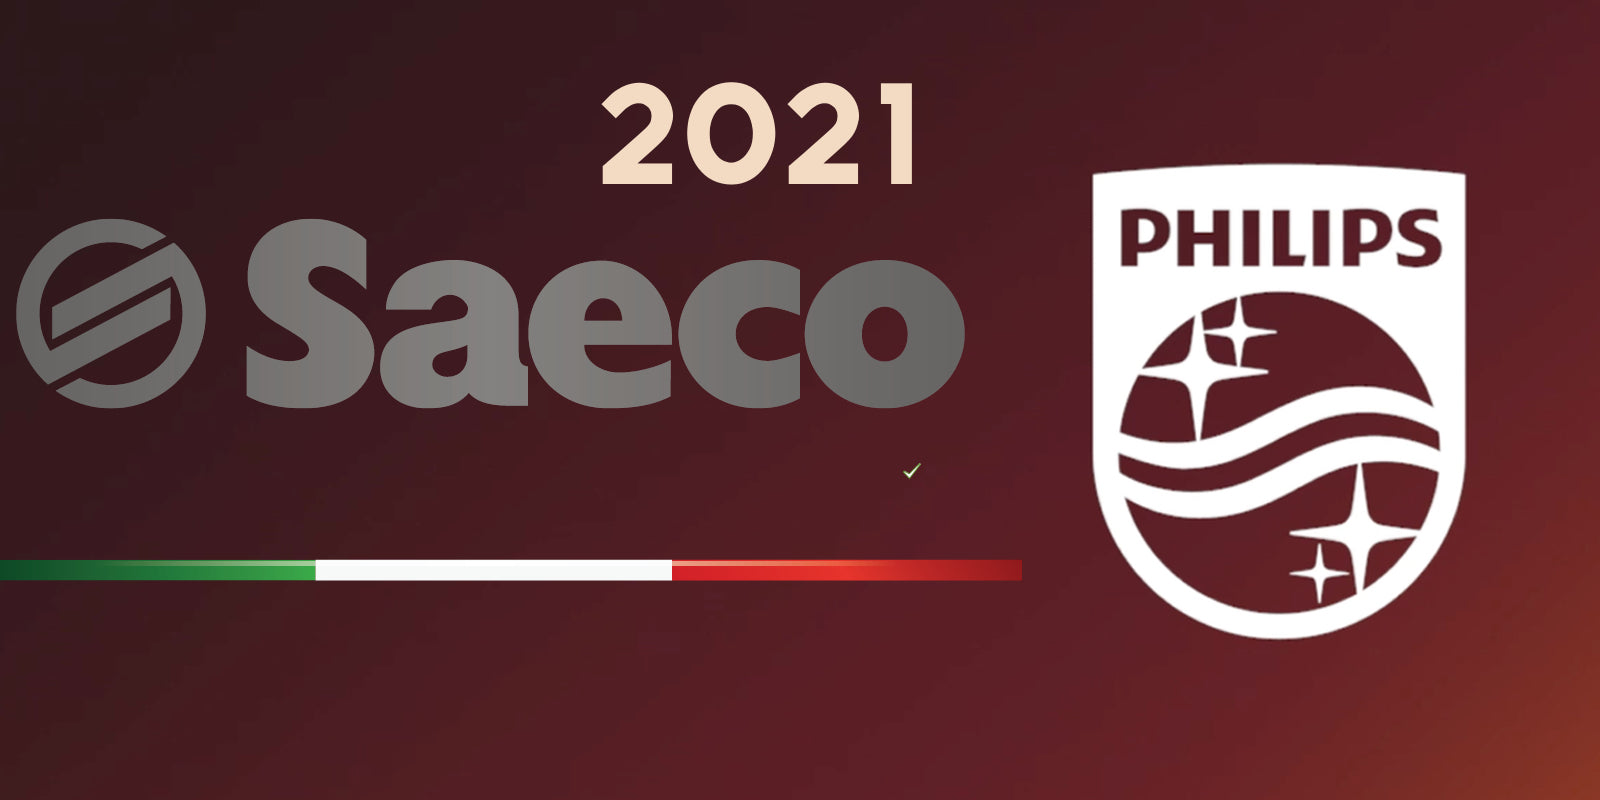 Blog Cover for Saeco Philips 2021 Machine Review from Espresso Canada